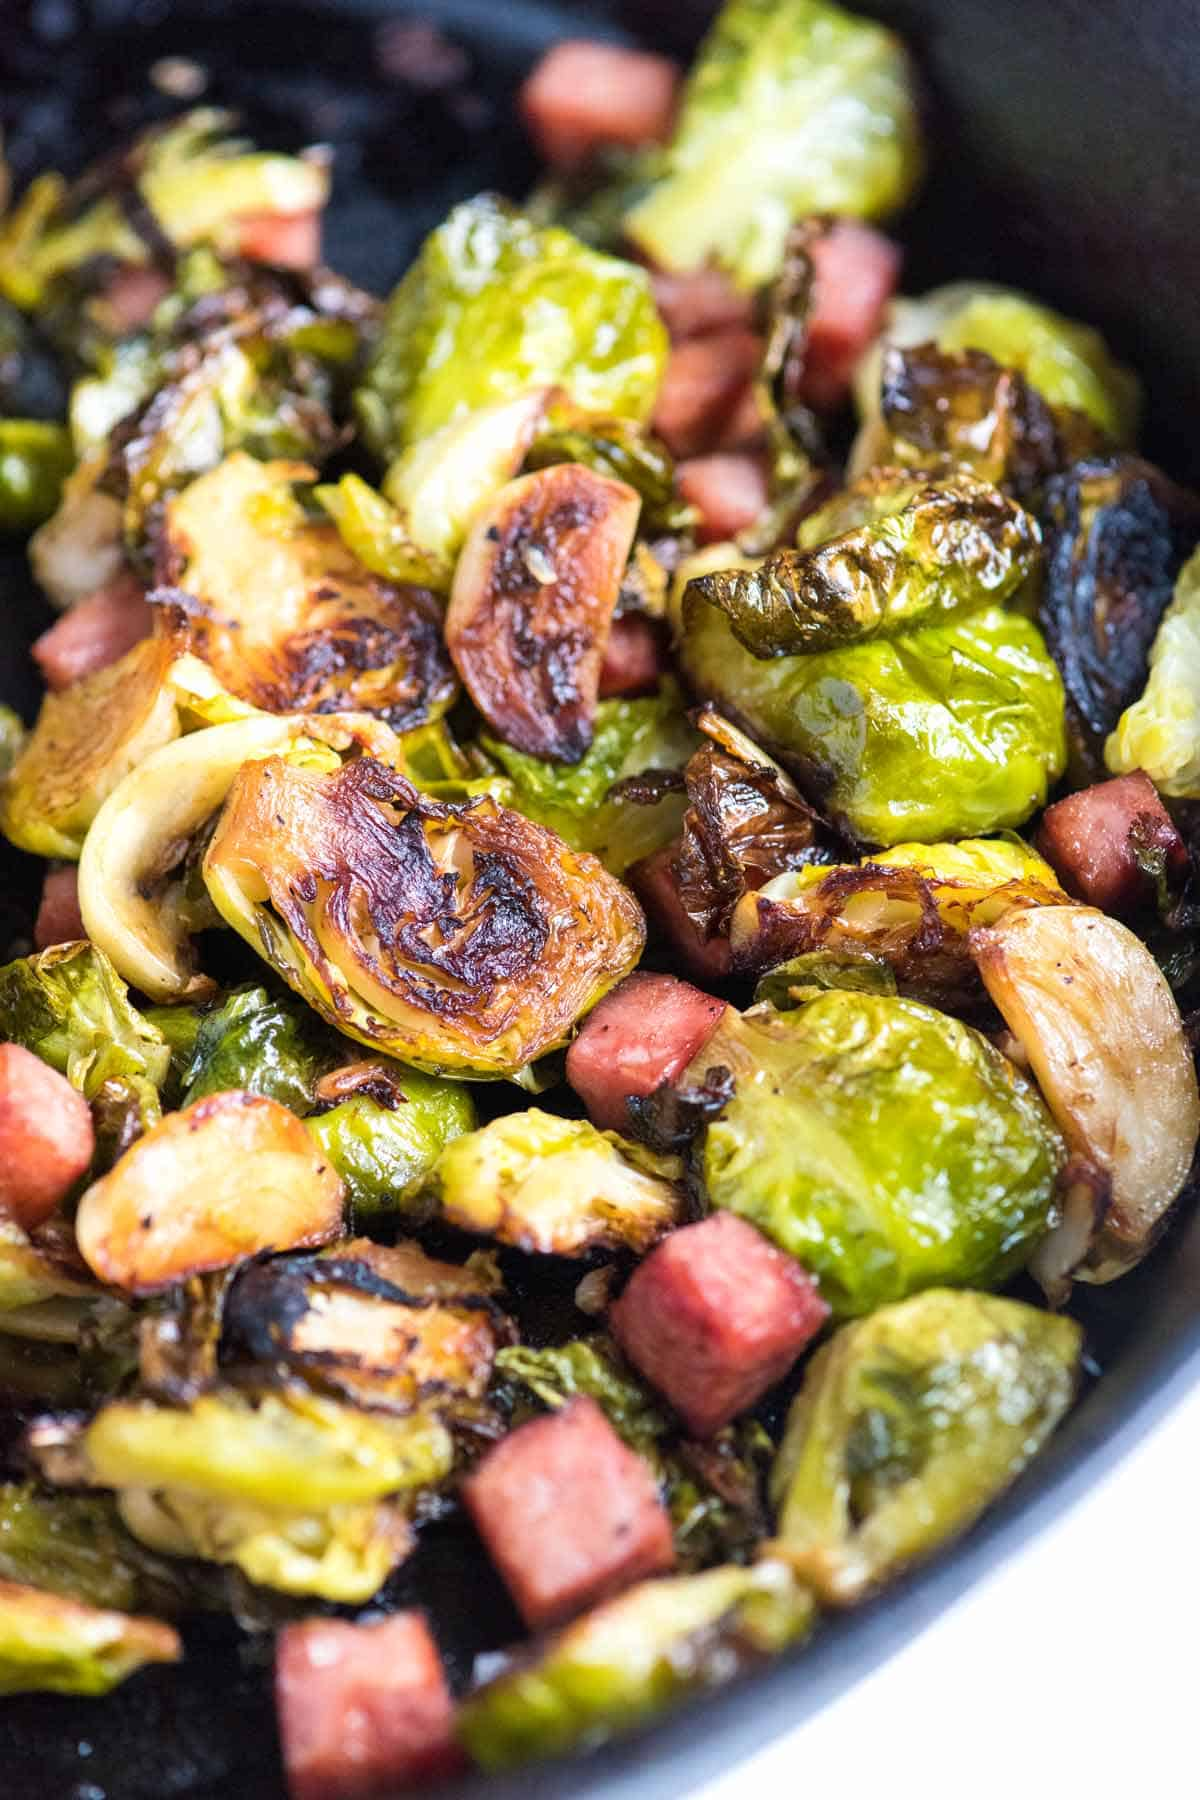 How to Make Brussels Sprouts with Ham and Garlic